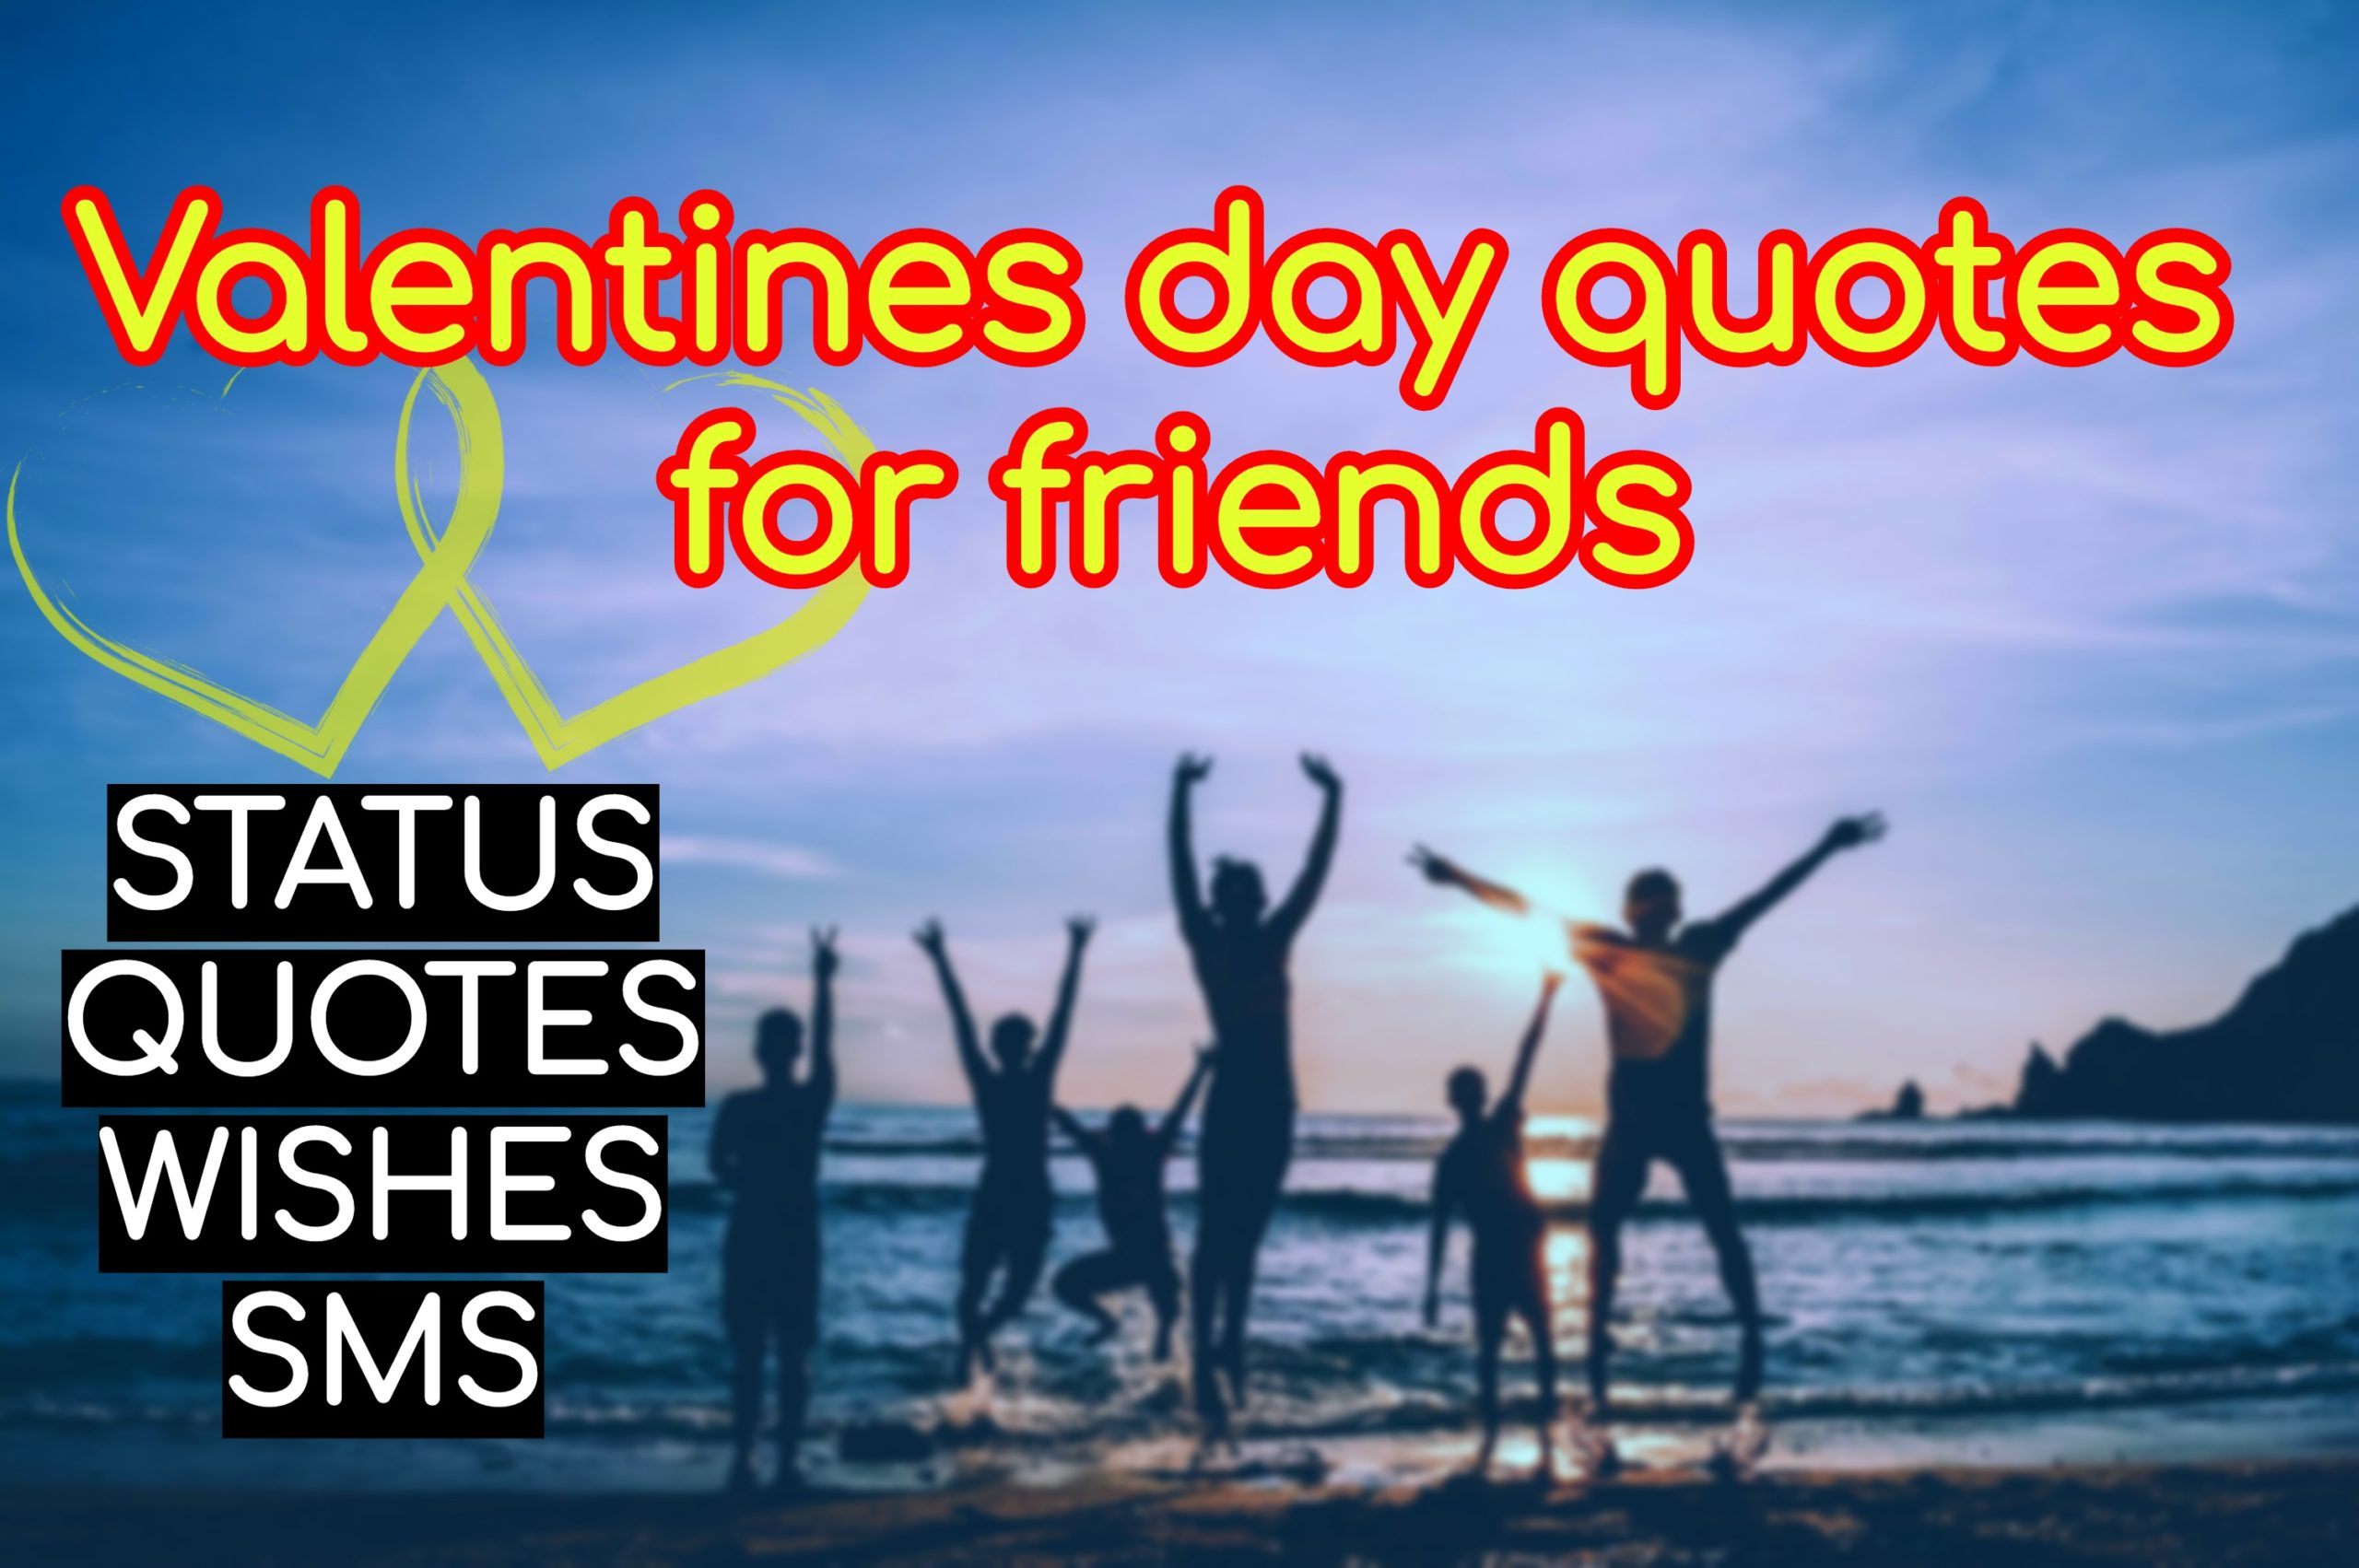 Valentines day quotes for friends 💛 - Quotes, Wishes & Status -